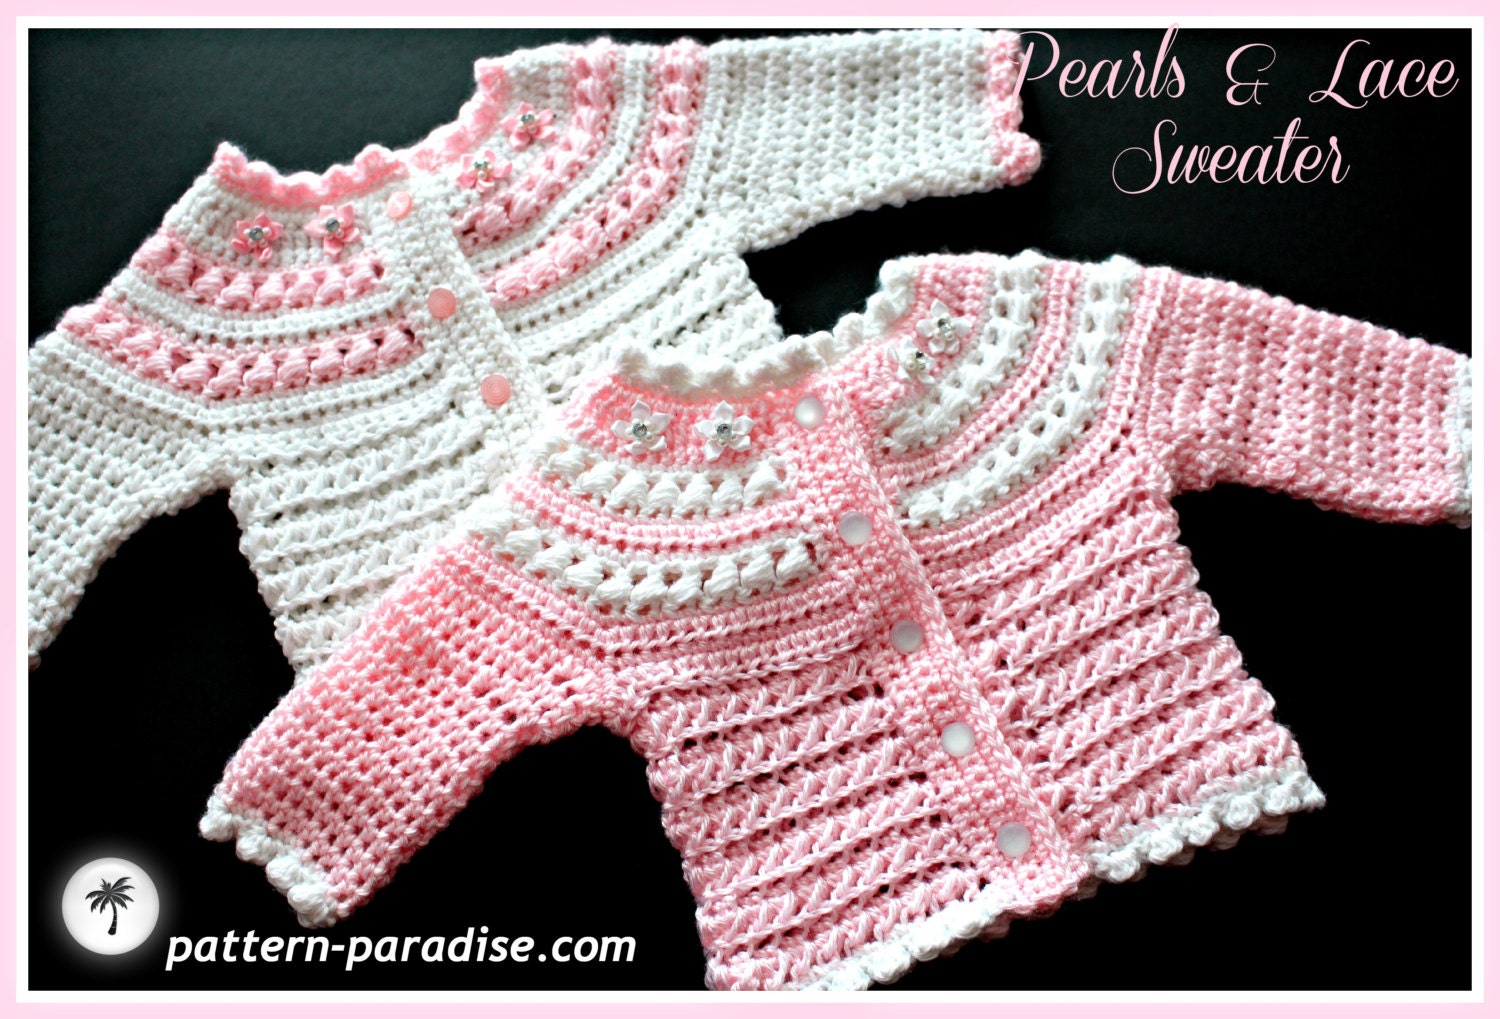 Crochet Pattern Cardigan Sweater Pearls and Lace Newborn to